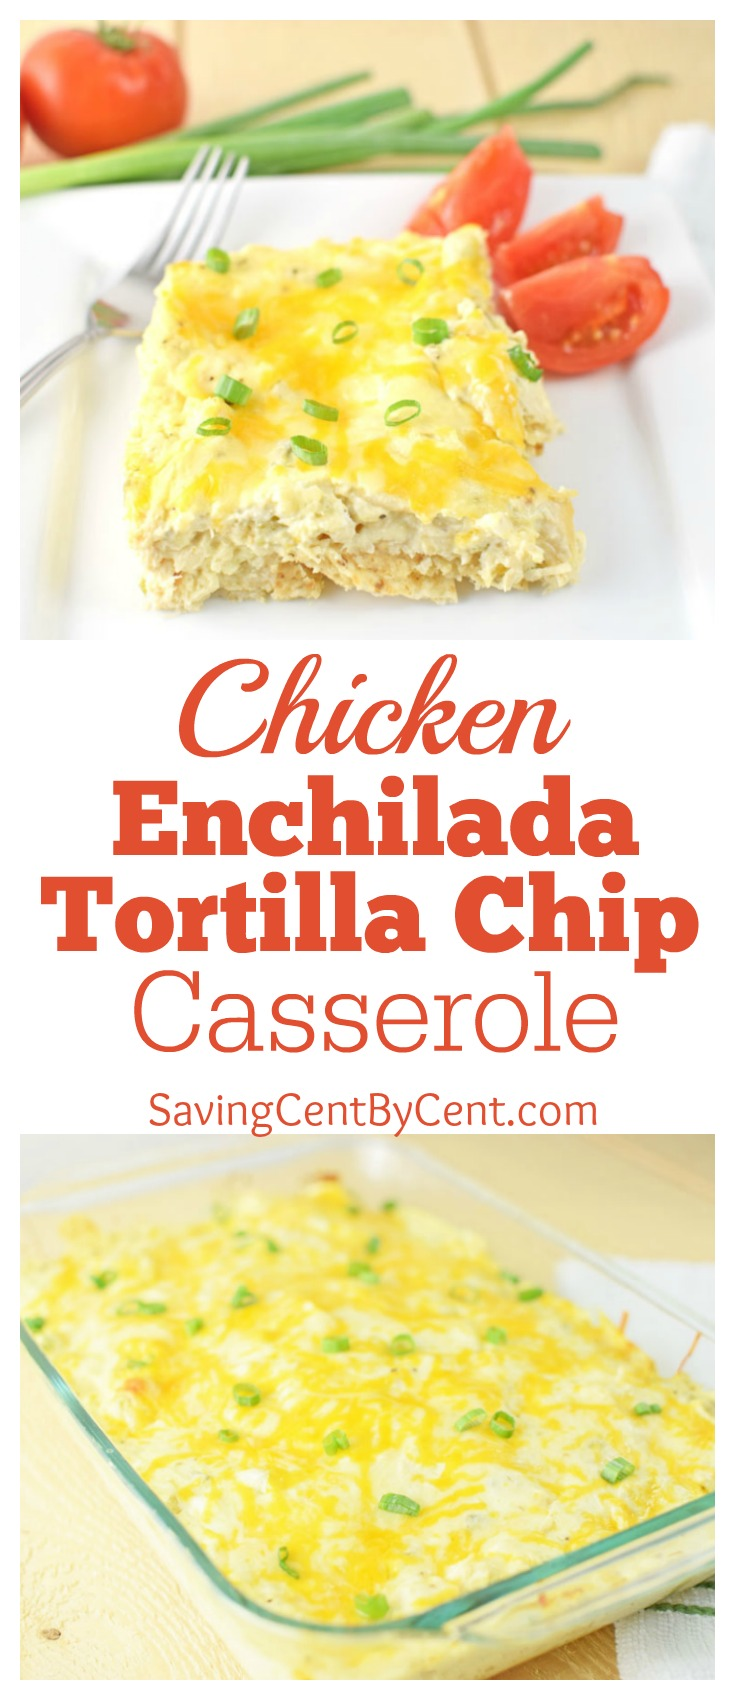 Chicken Enchilada Tortilla Chip Casserole